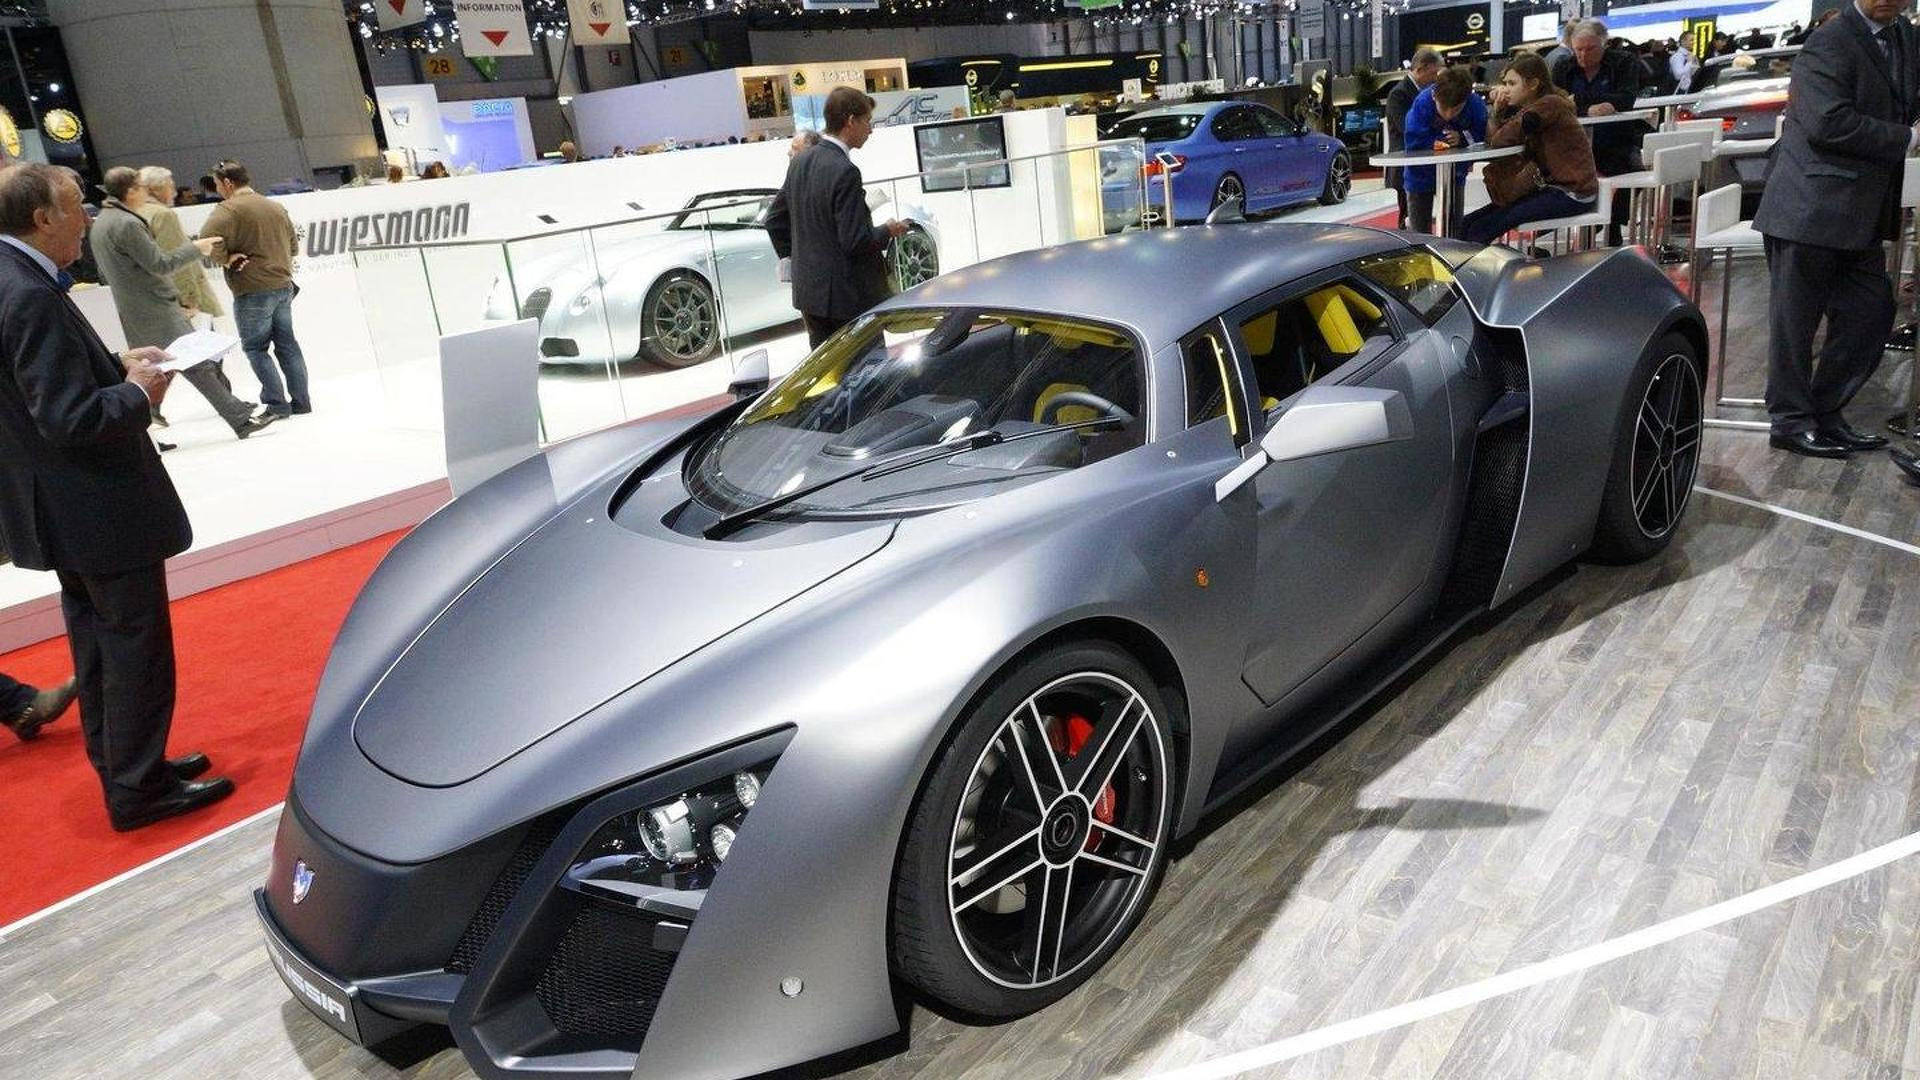 Valmet announces contract to build Marussia B2